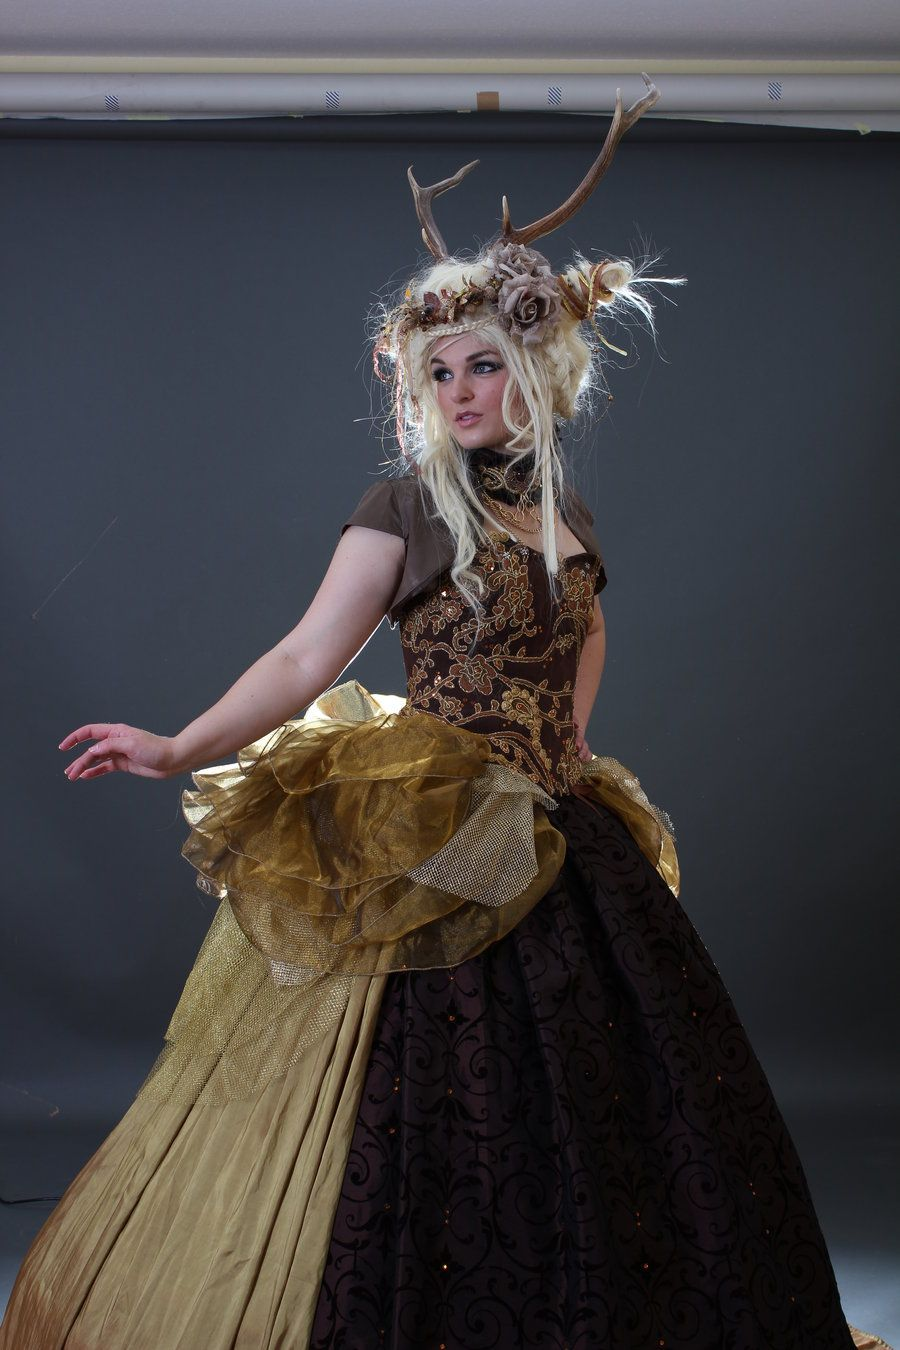 Pin by Kat Taylor on Steampunk Ball Gown Ideas | Pinterest | Magic ...